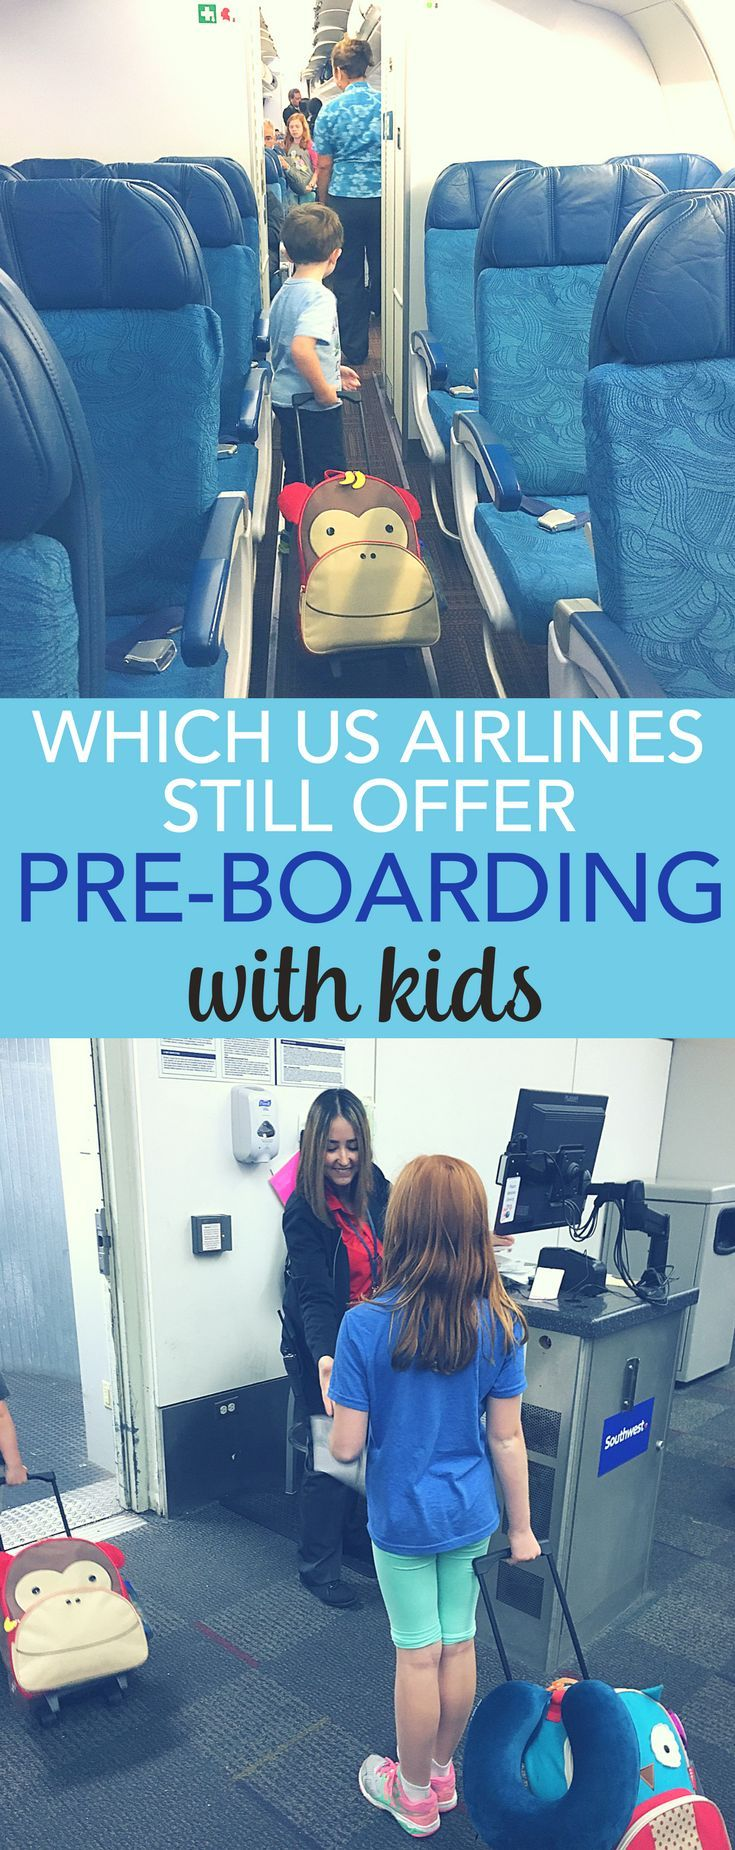 Flying with kids? Find out which airlines in the United States still offer family pre-boarding privileges and what ages and special considerations apply. #familytravel #flyingwithkids #airlines #TMOM